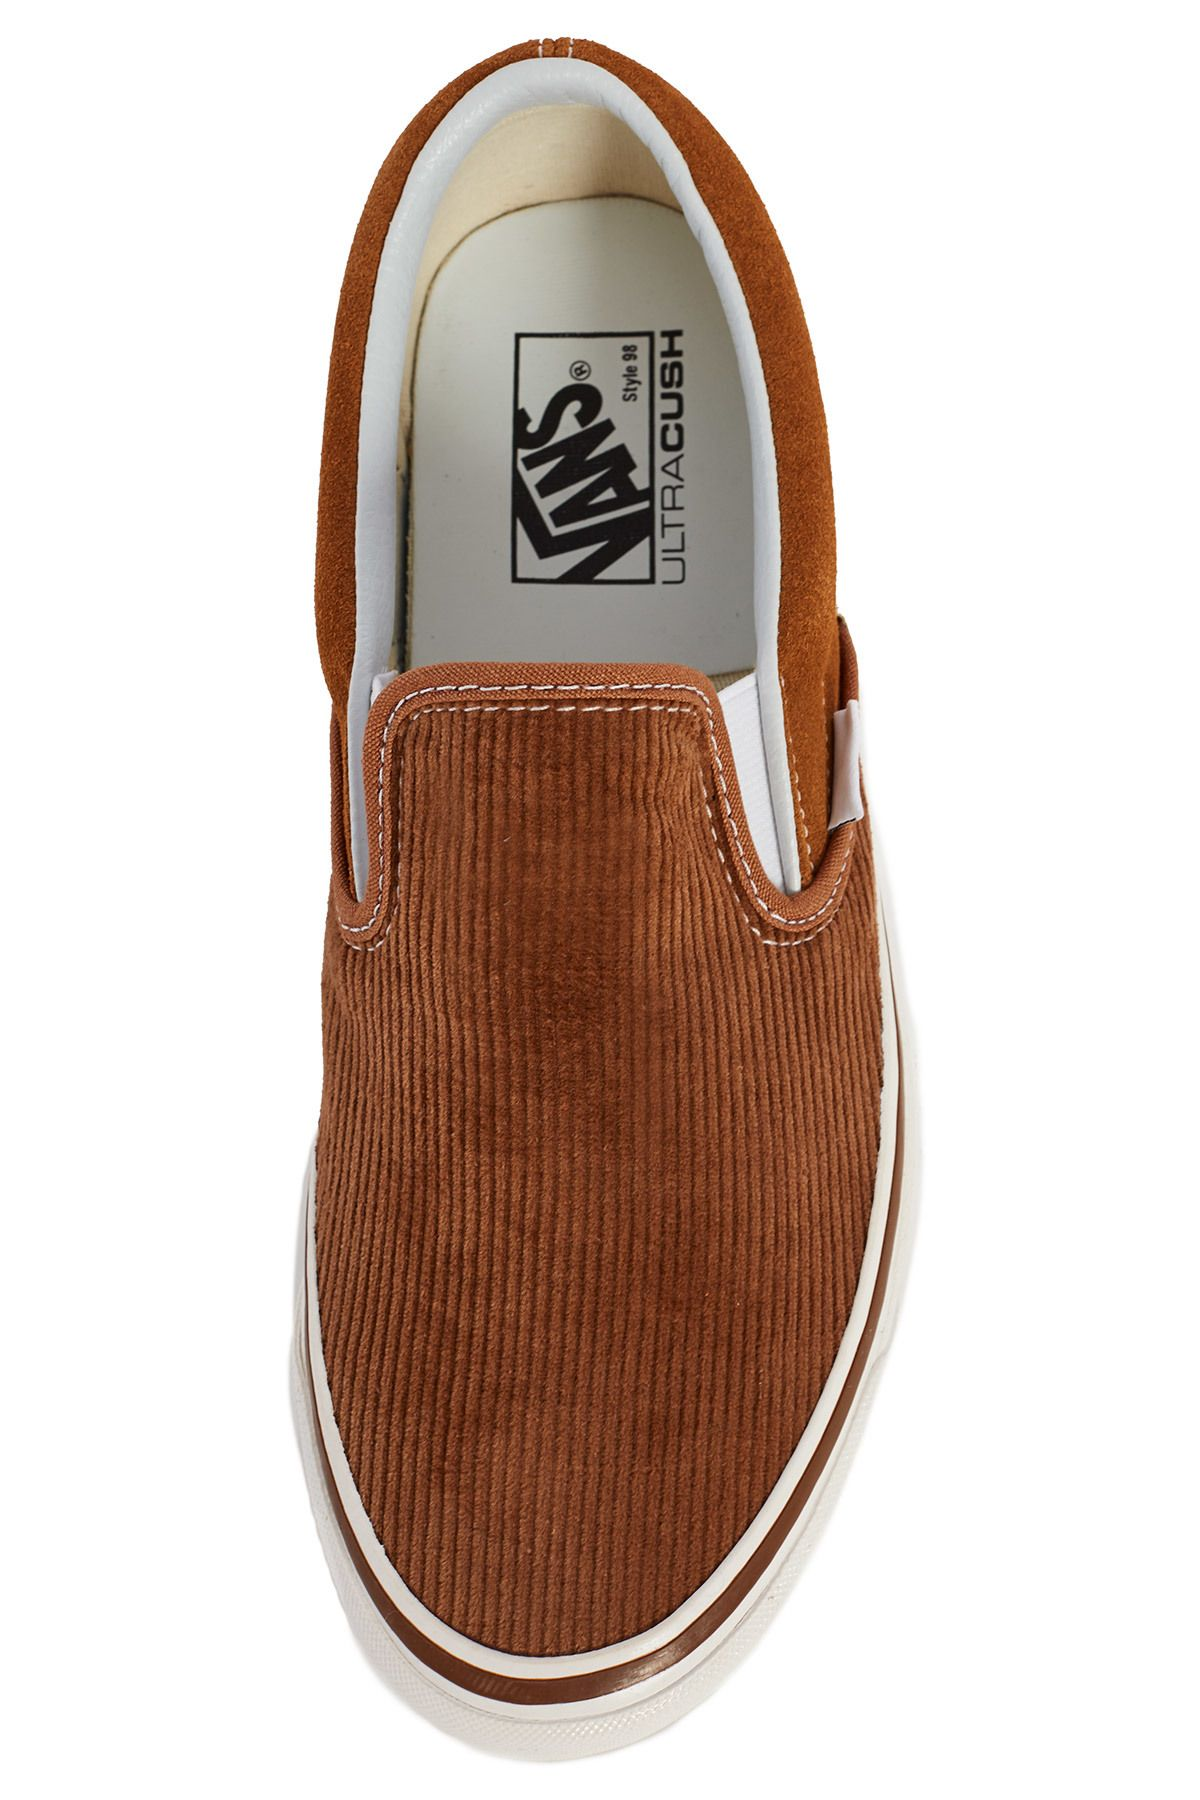 Vans Classic Slip On 98 Dx Sneaker Opening Ceremony In 2020 Vans Vans Classic Slip On Sneaker Vans Classic Slip On